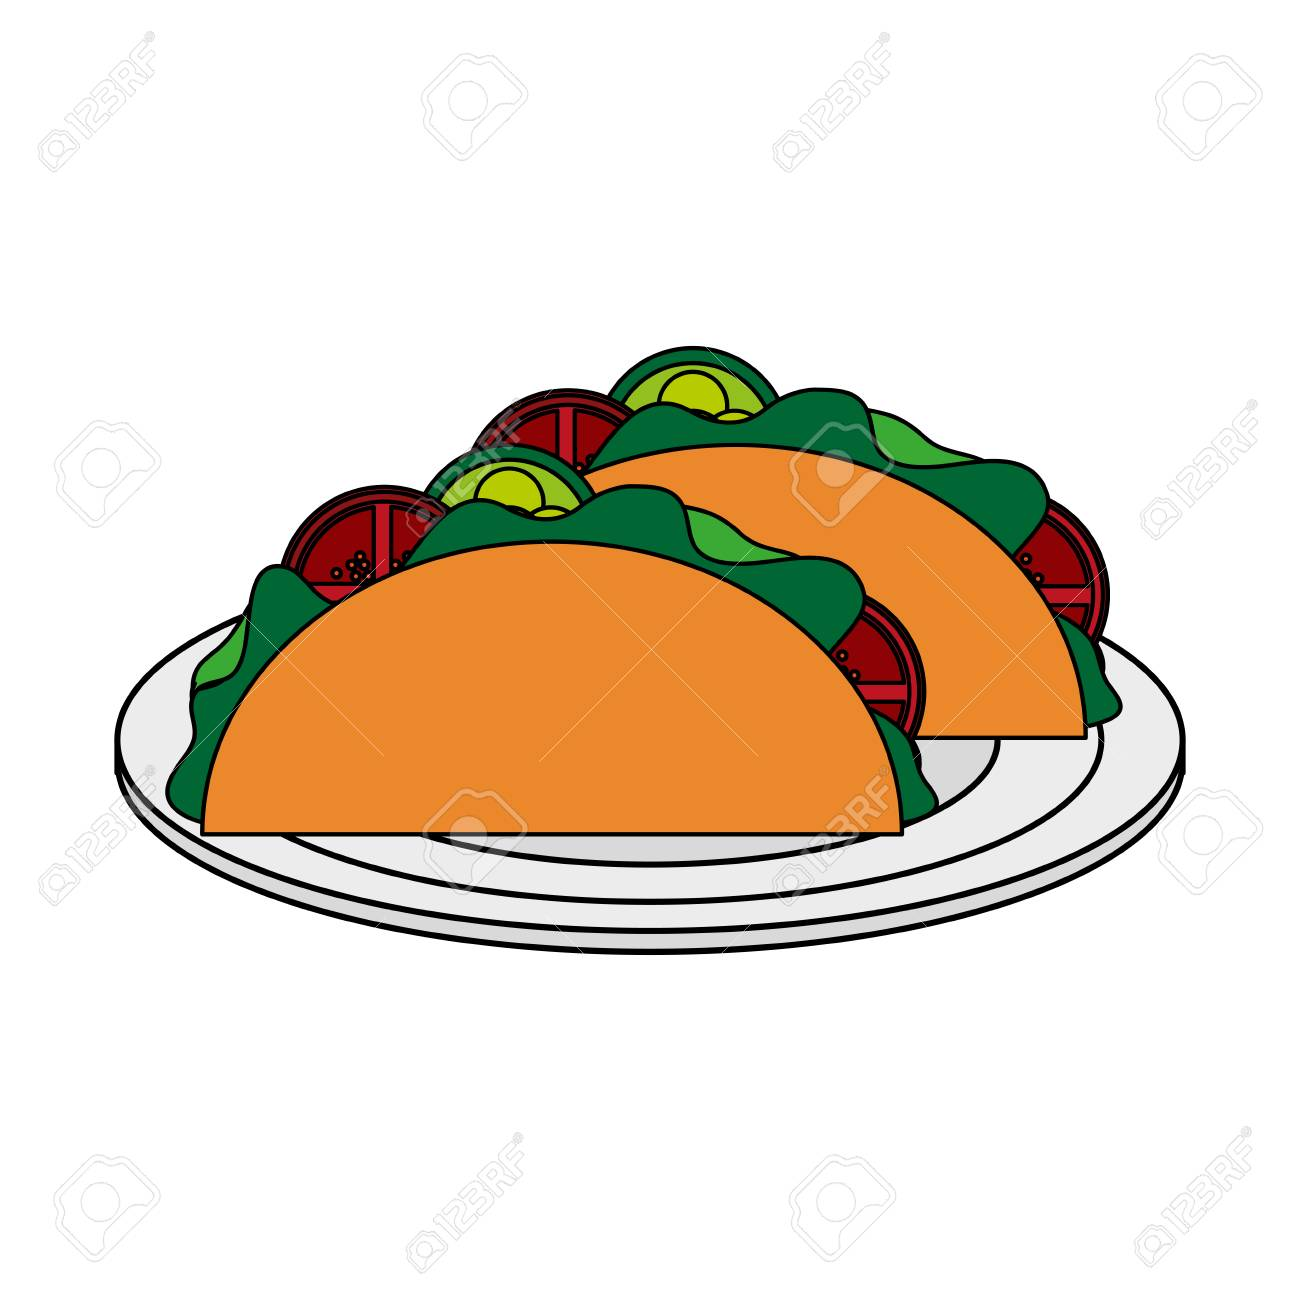 color image cartoon tacos on plate mexican food in white dish rh 123rf com cartoon mexican food cartoon mexican food